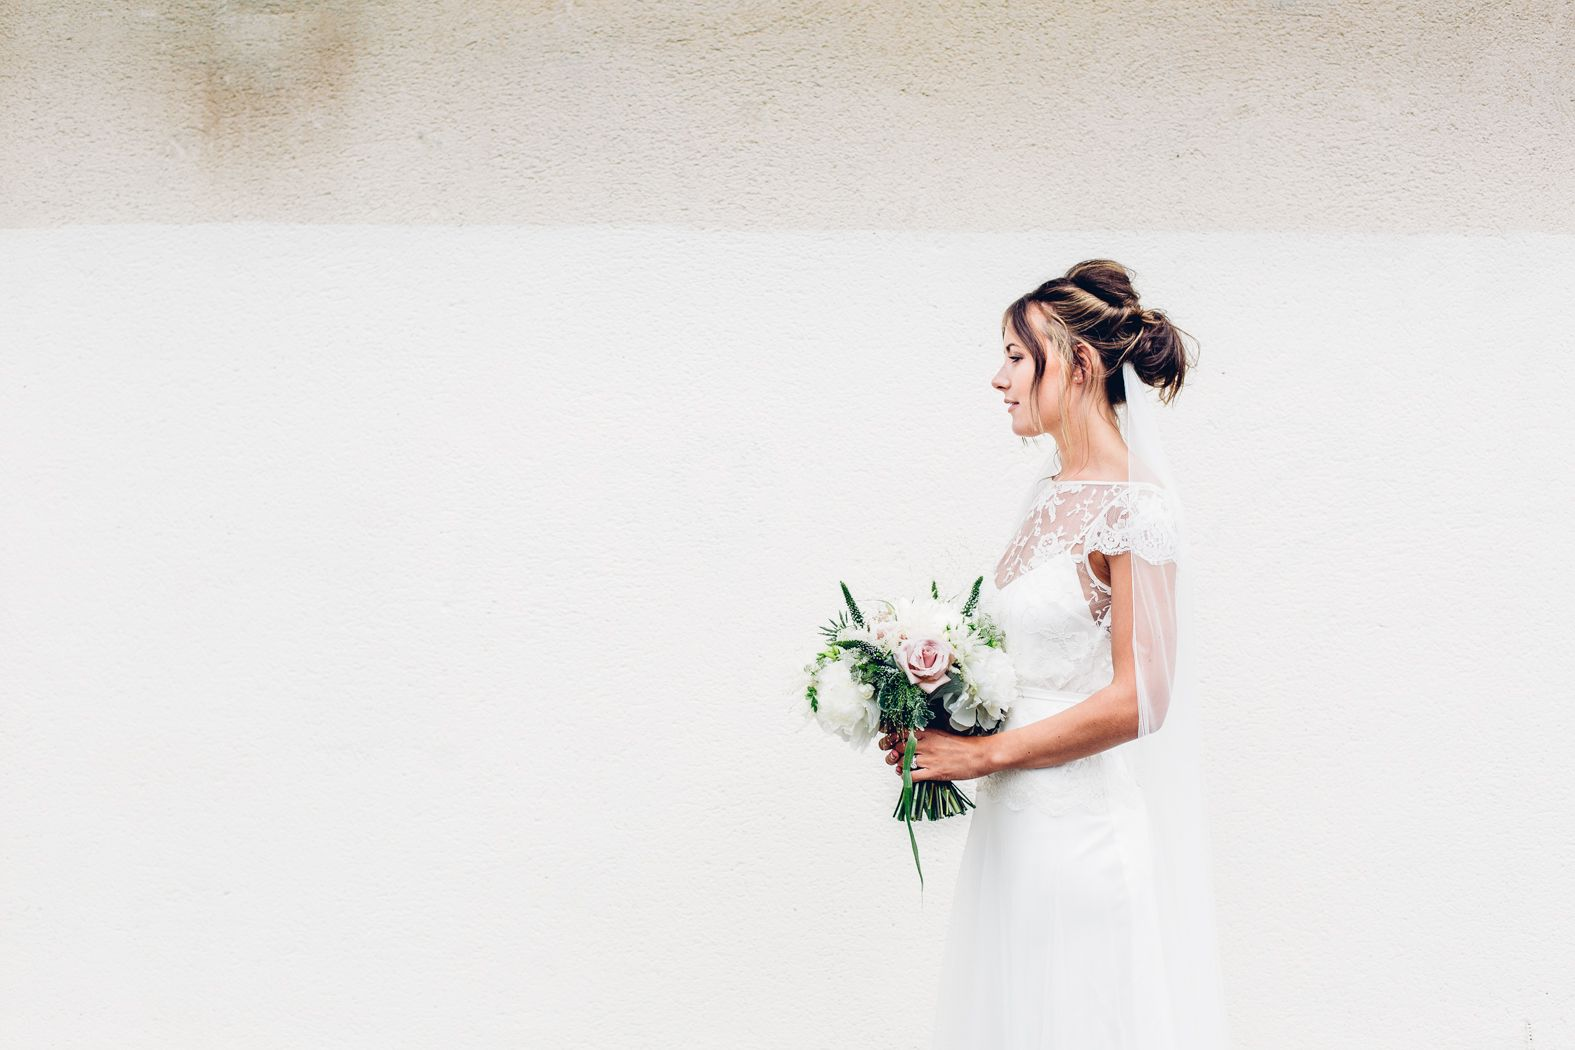 Halfpenny london wedding dress for an industrial wedding in halfpenny london wedding dress halfpenny london wedding dress industrial wedding in sheffield navy ombrellifo Images